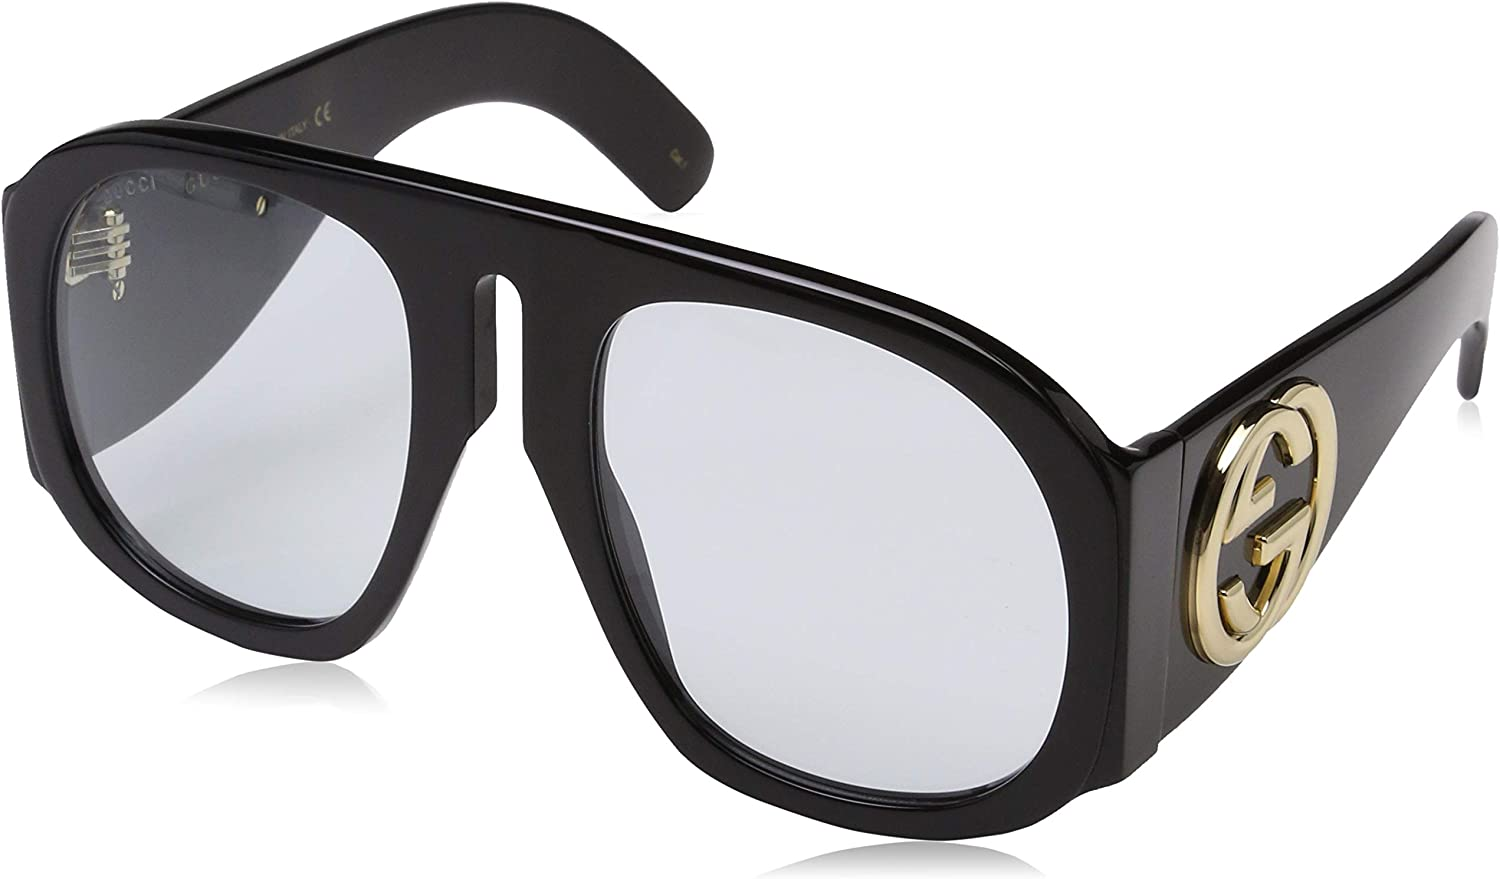 Gucci GG0152S 001 Gafas de sol, Negro (Black/Light-Bluee), 57 para Mujer